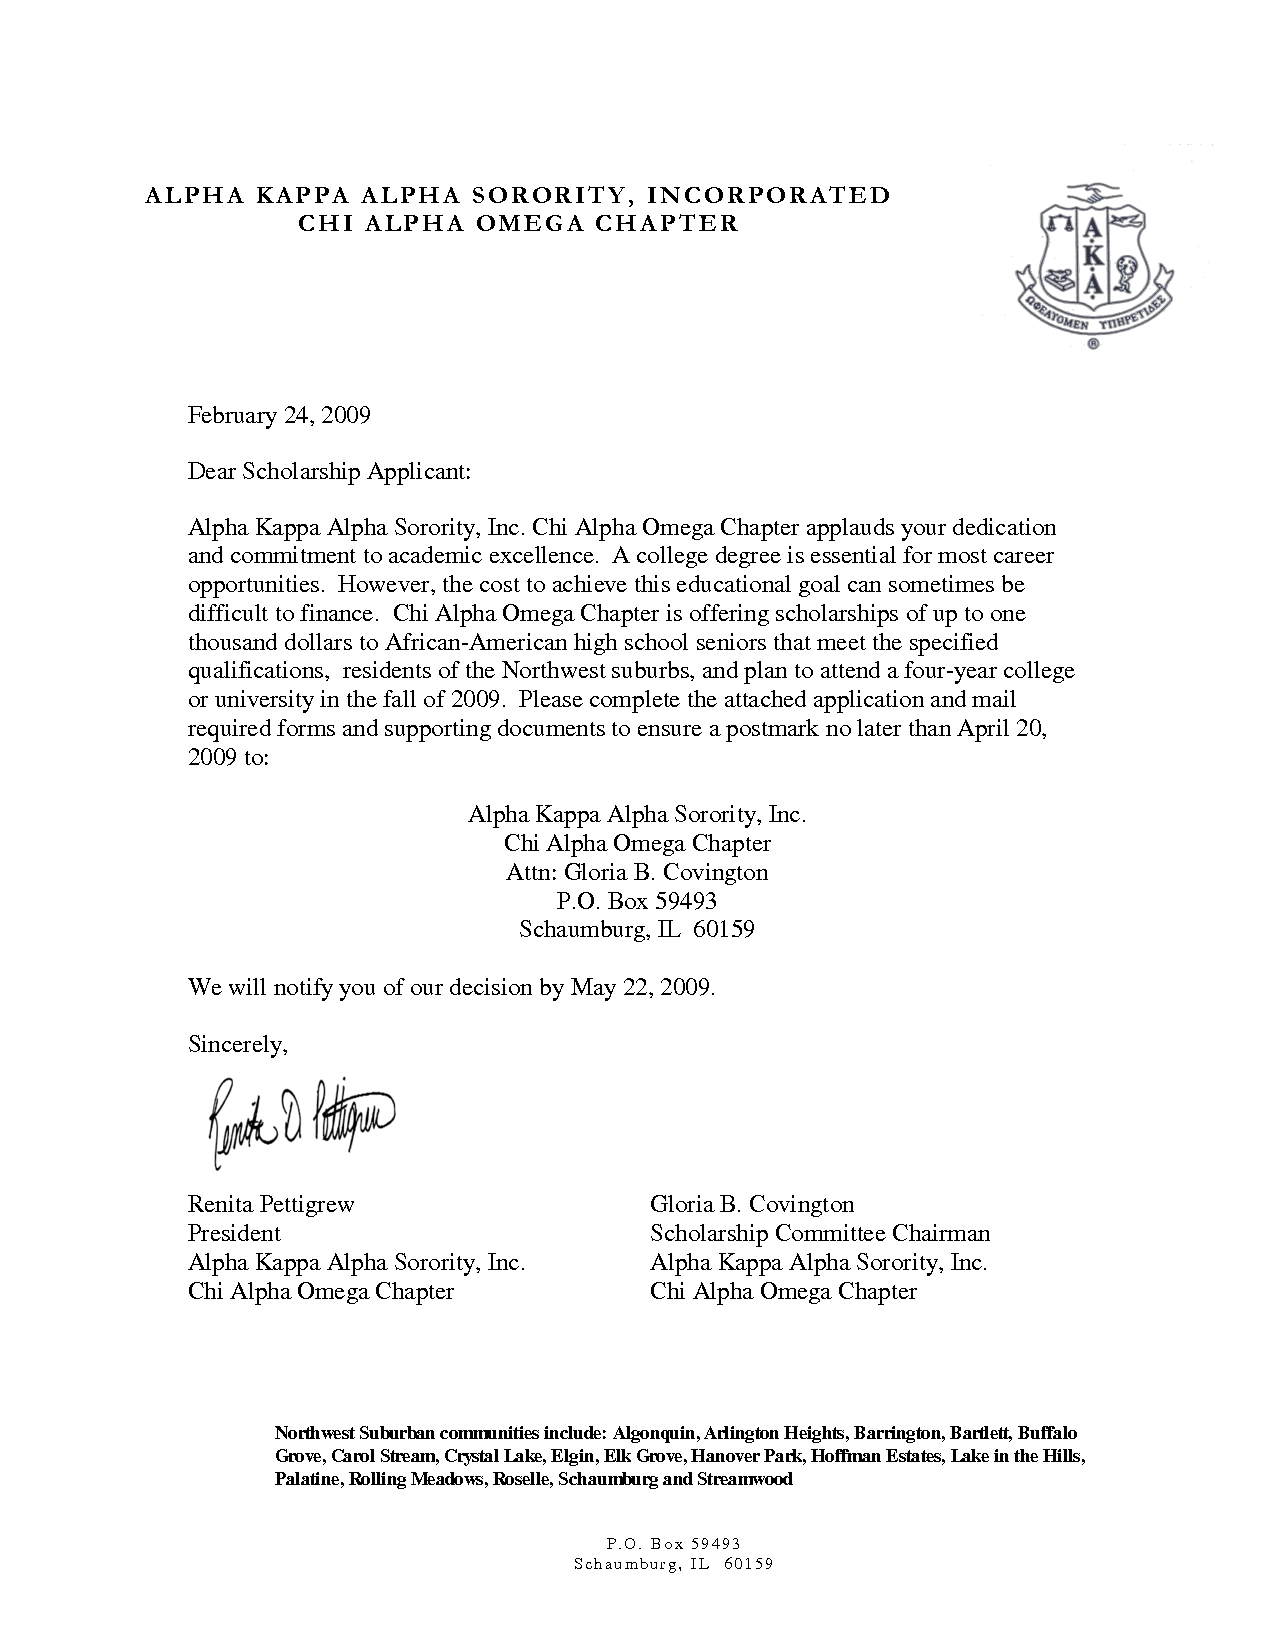 Generic letter of recommendation bunch ideas of letter of letter here is a sample letter of sorority recommendation cover spiritdancerdesigns Image collections